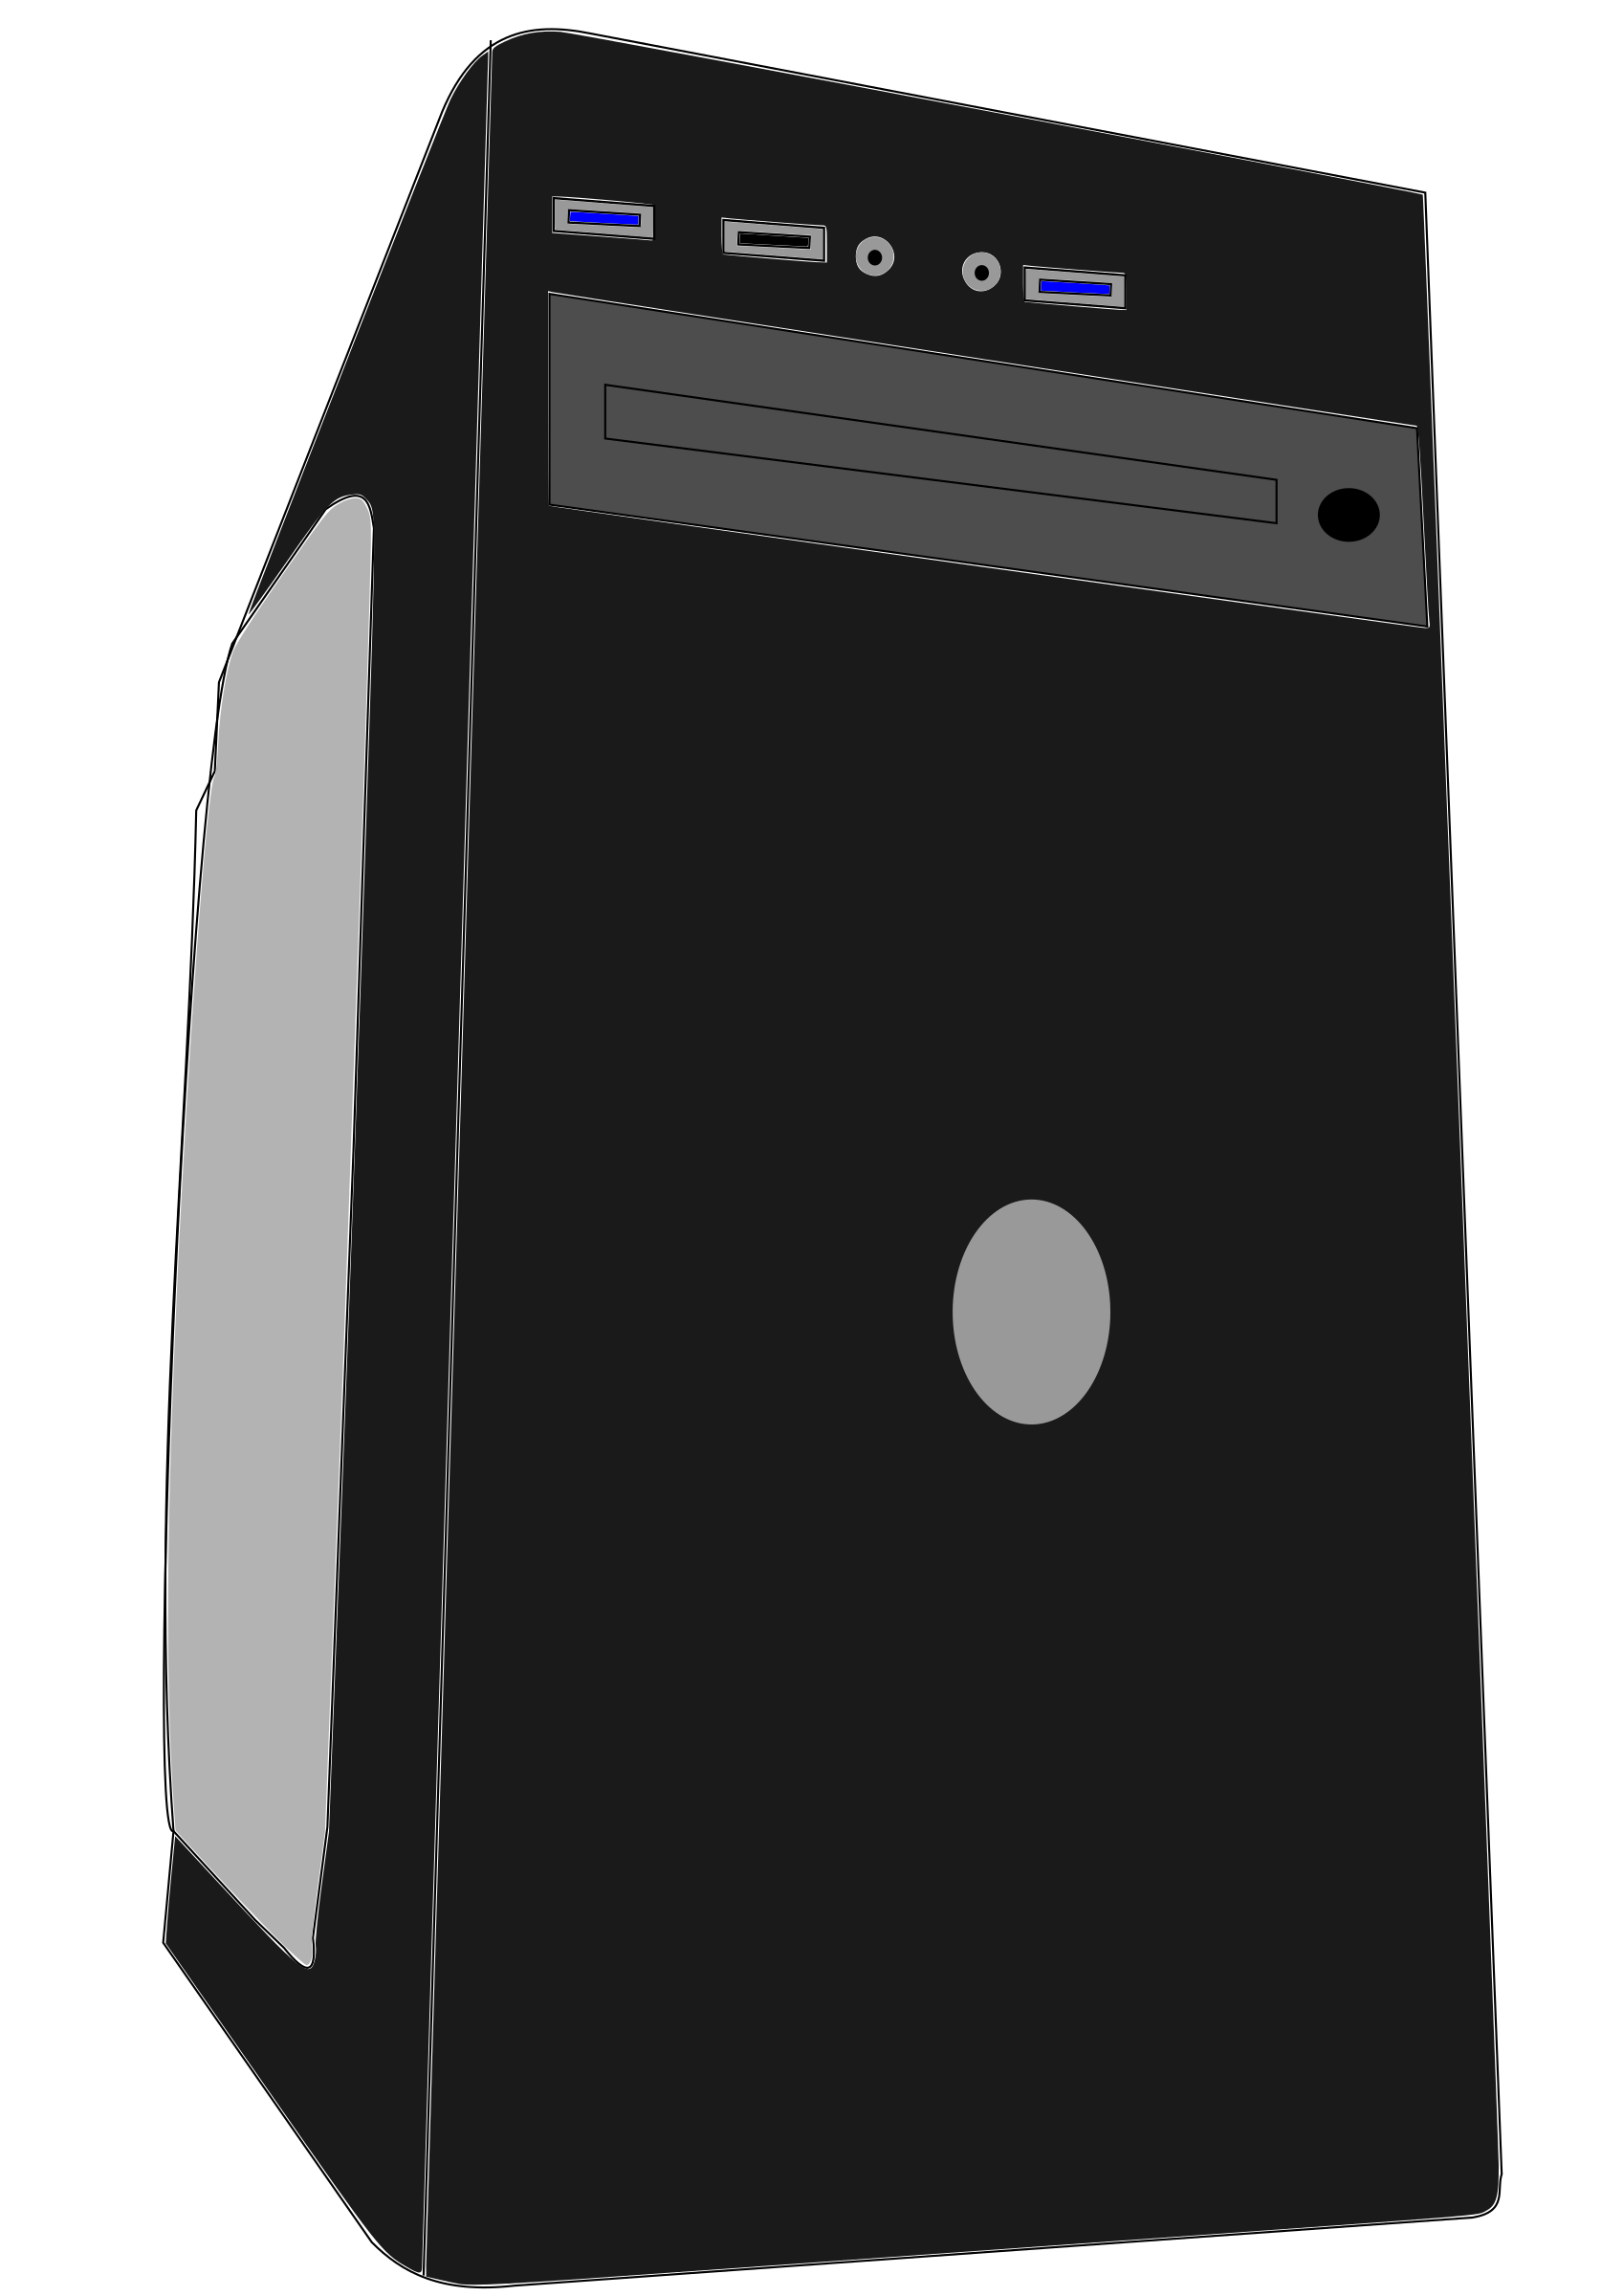 PC,komputer,computer   by tom123456789002